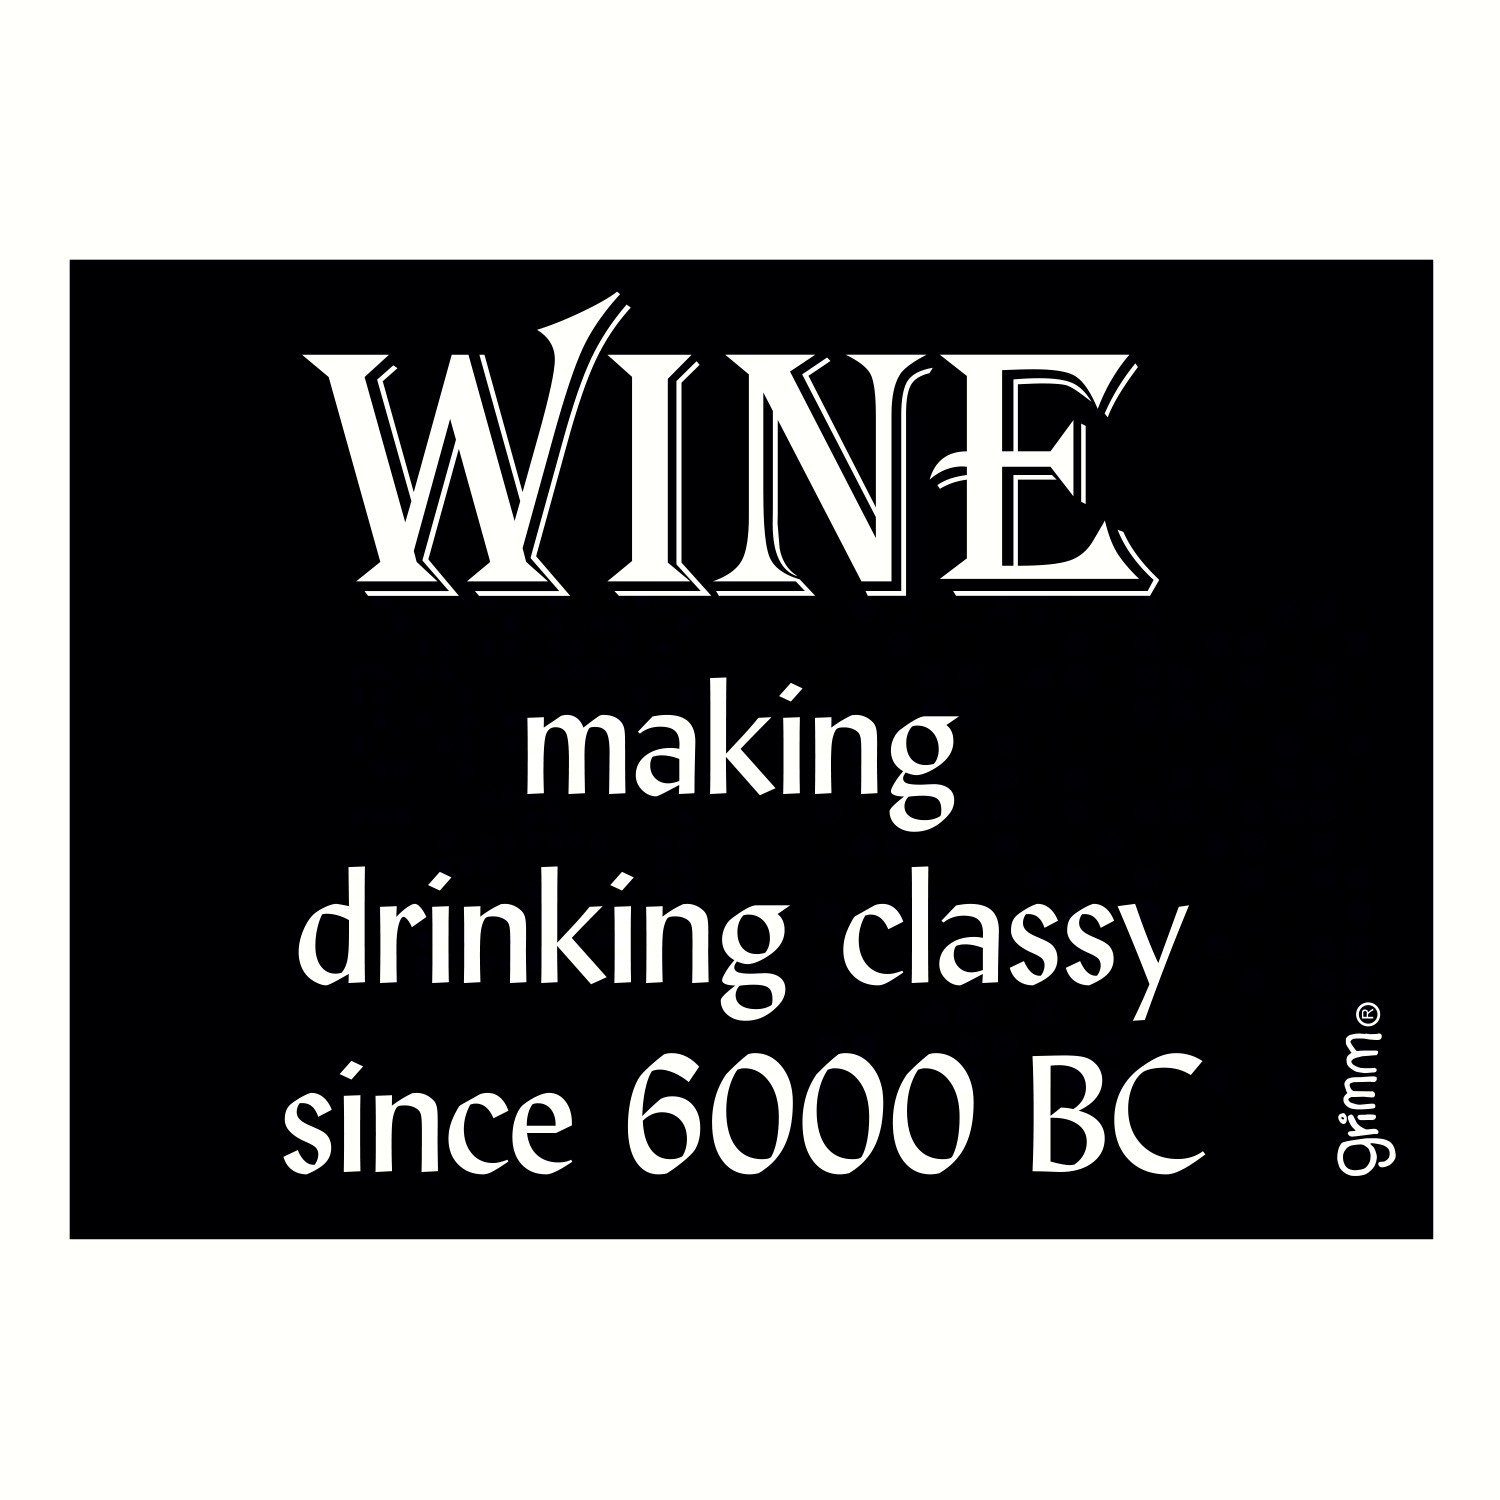 Magnet, Humorous Saying, Wine making drinking classy since 6000 BC